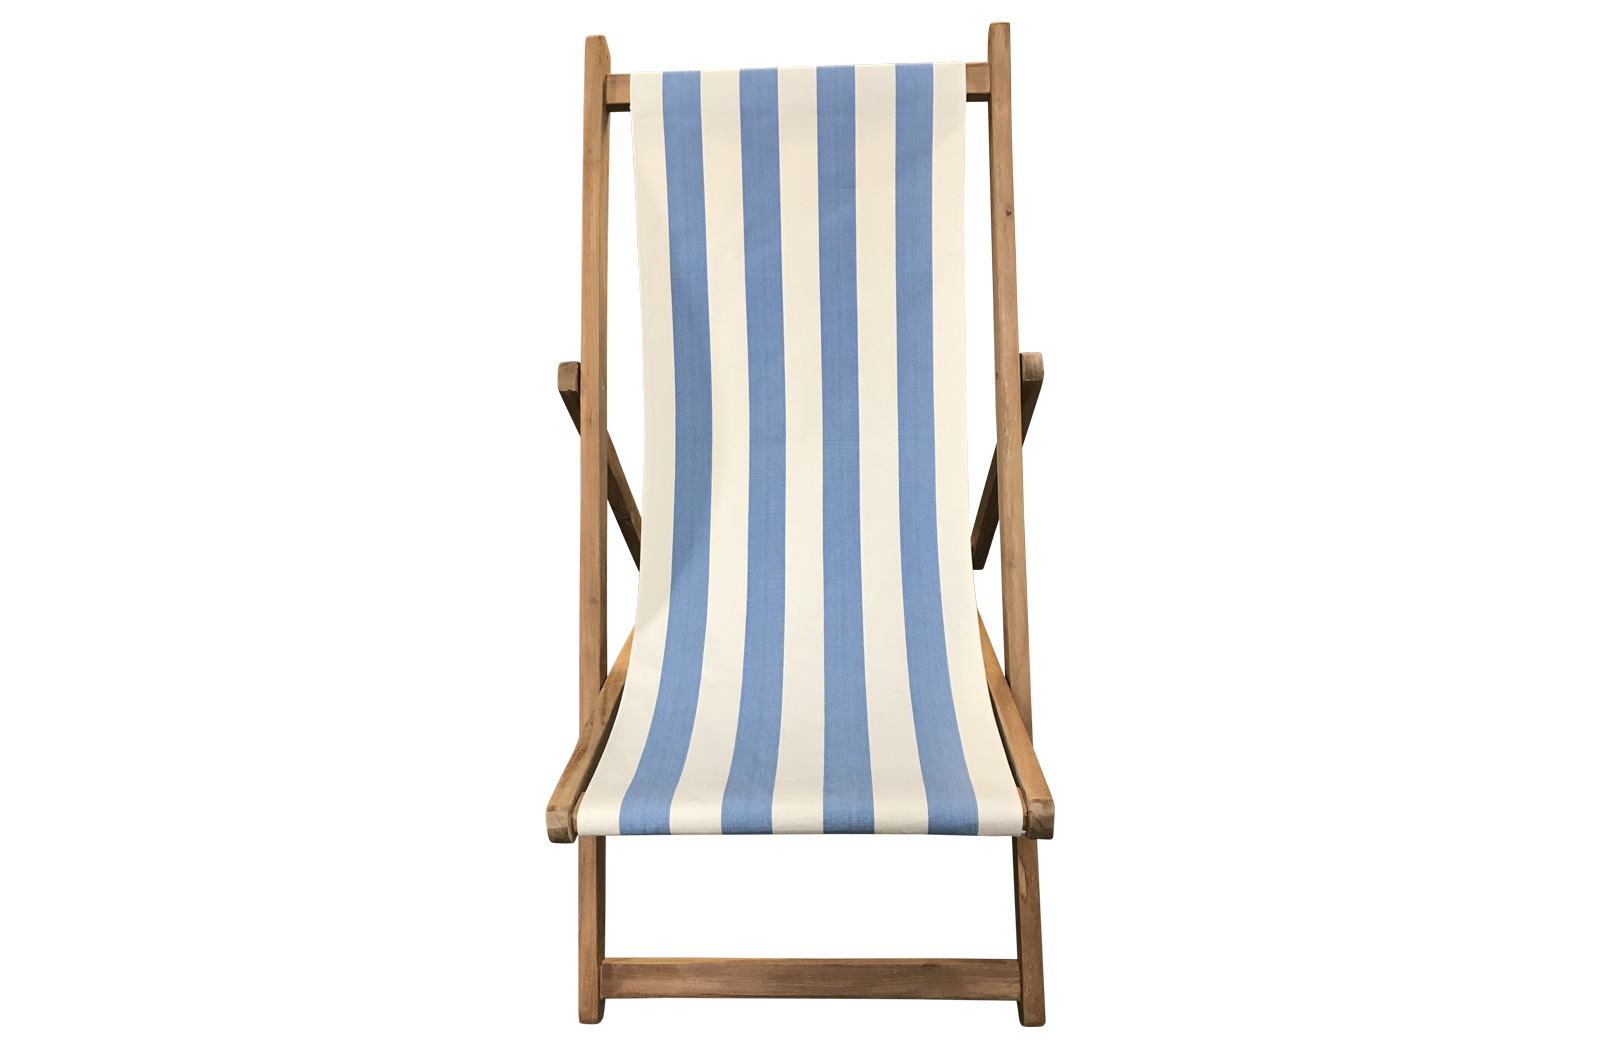 Sky blue and white- Deckchairs | Buy Folding Wooden Deck Chairs